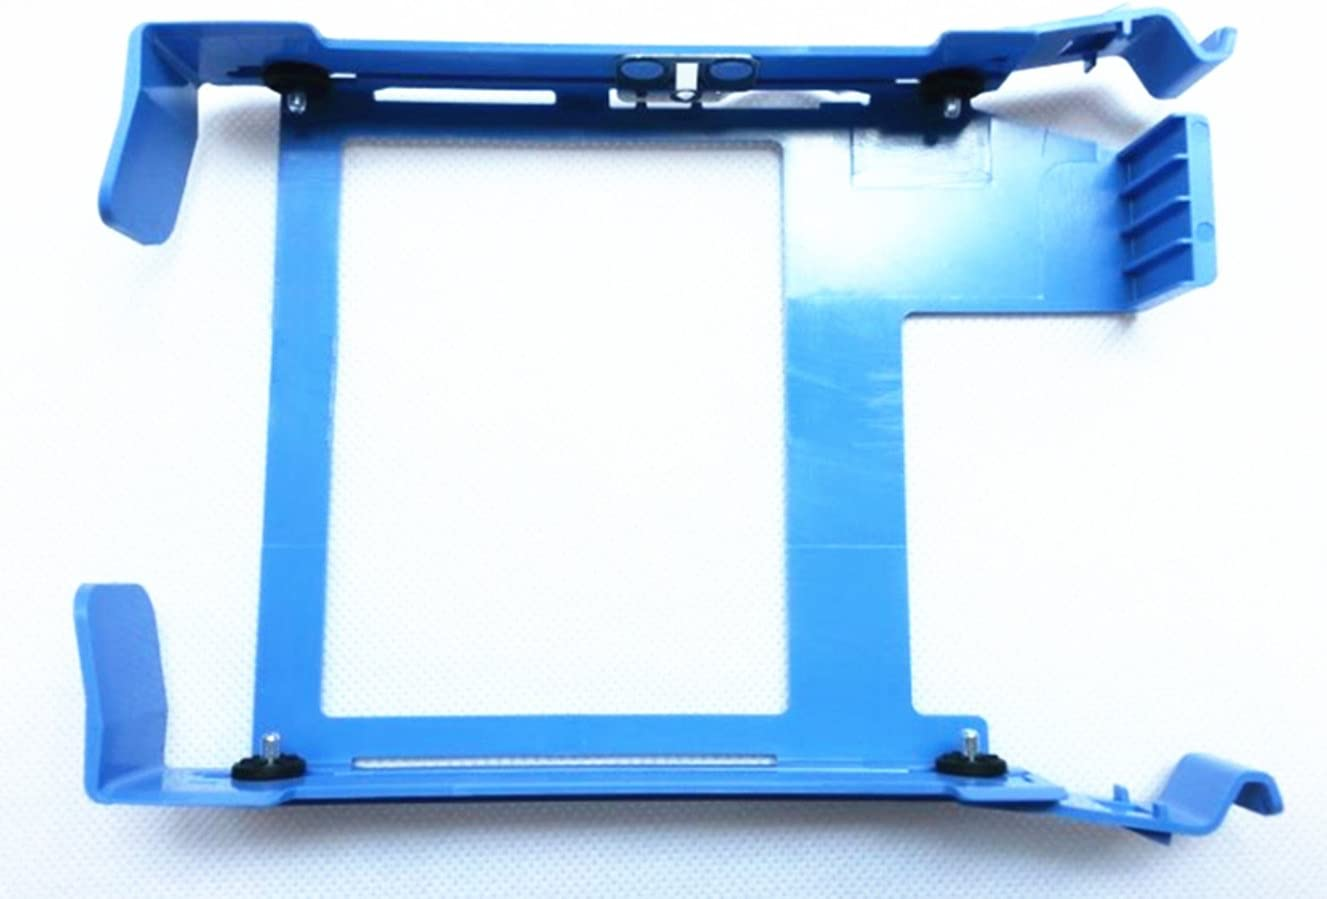 Pocaton 3.5 Inch HDD Hard Drive Caddy/Bracket Applies to Optiplex 390 790 990 3010 3020 7010 7020 9010 9020 MT SFF Computer/Precision workstations Blue